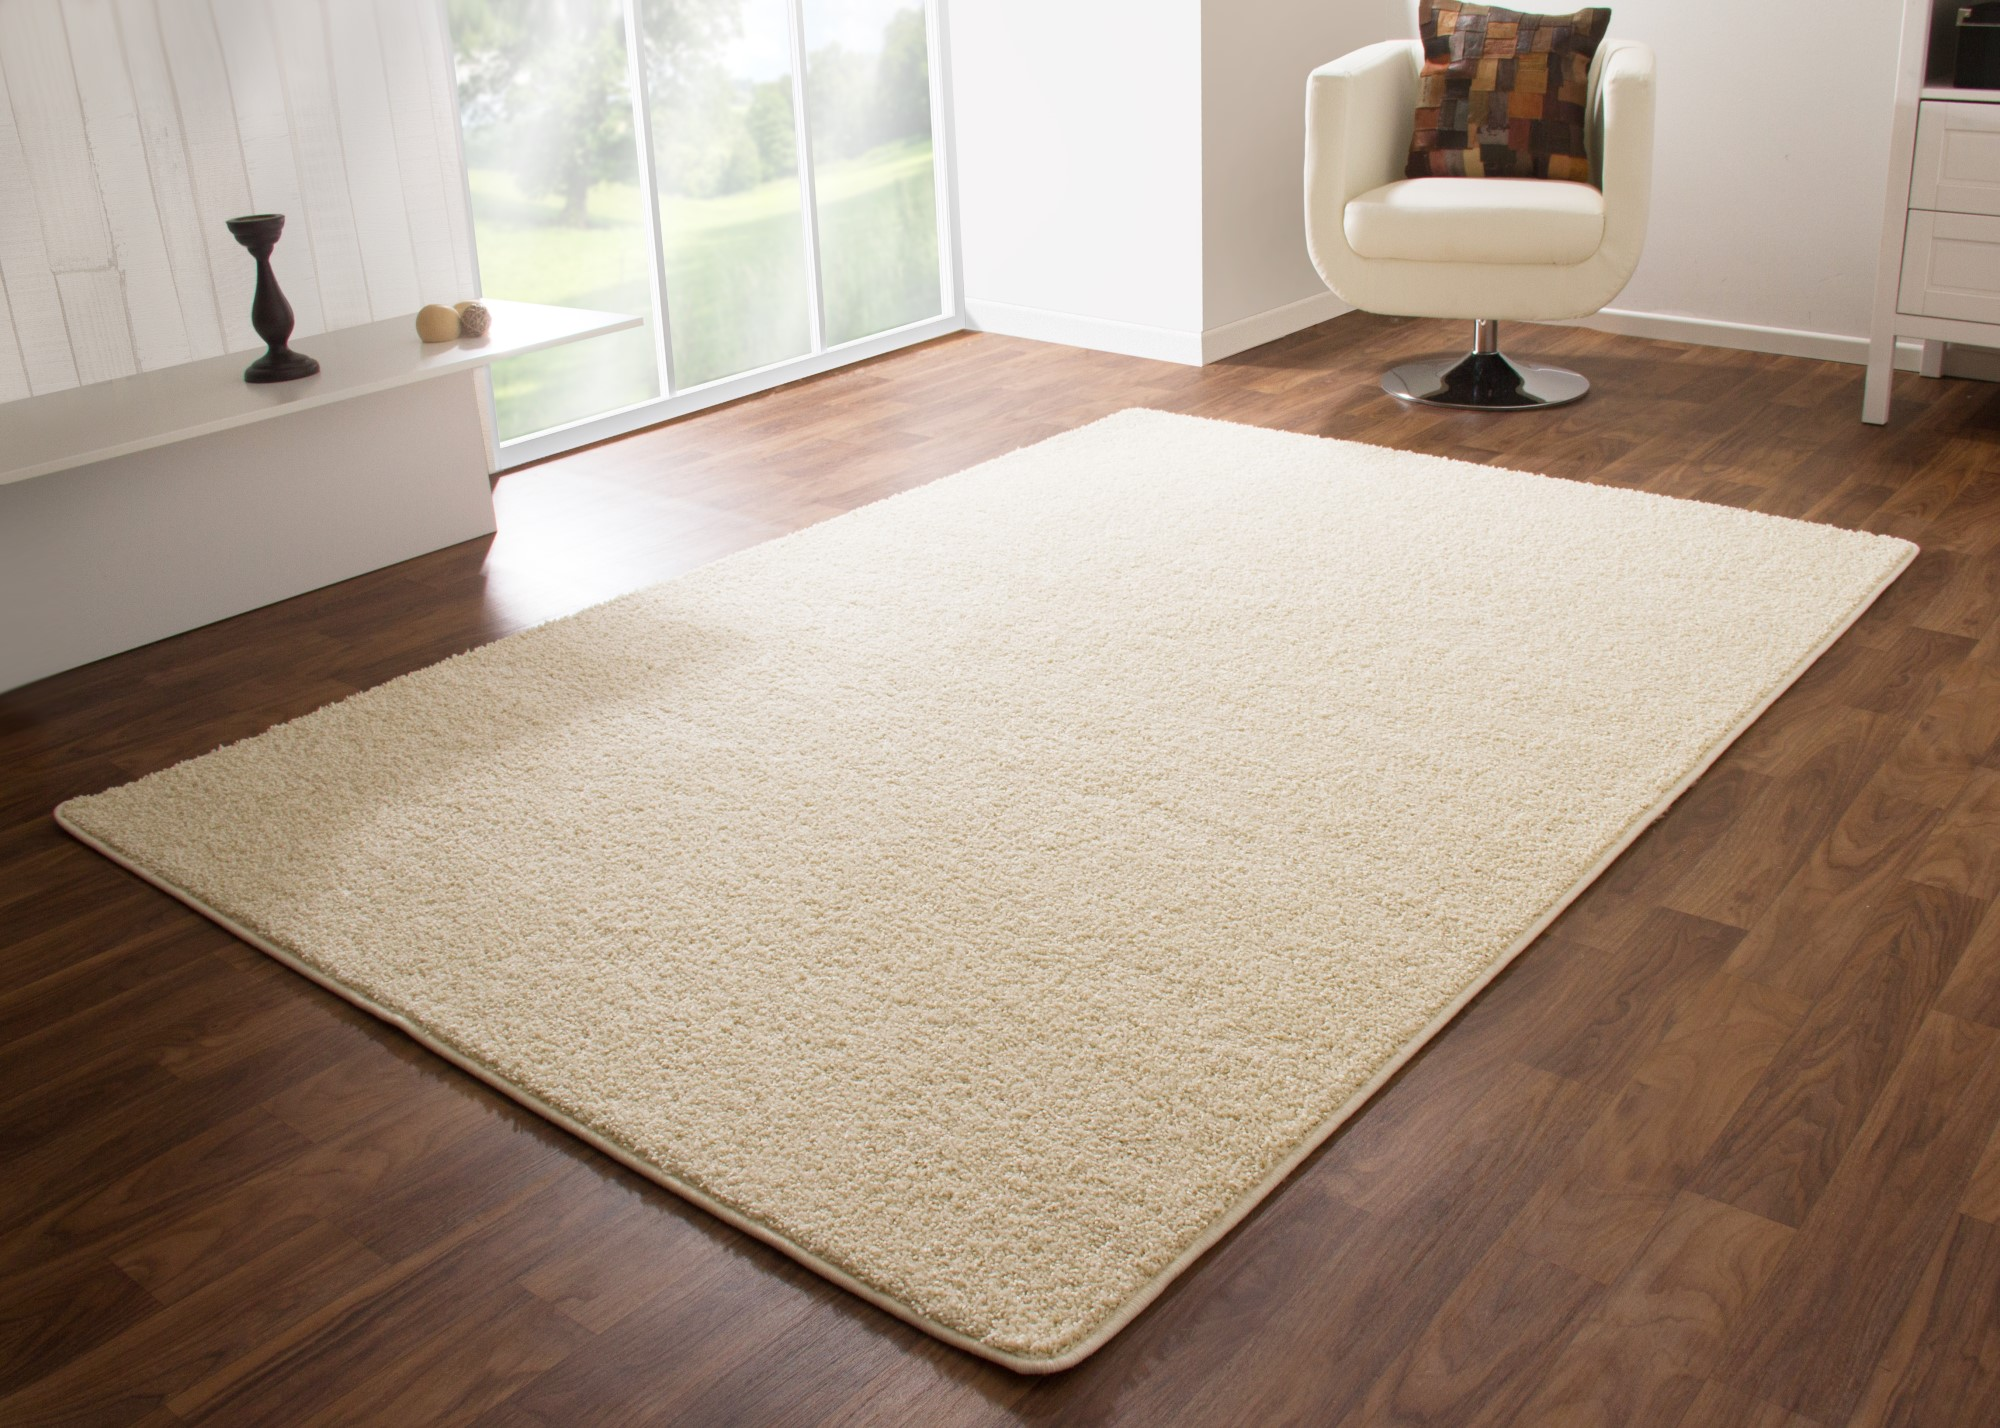 H&m Home Teppich Shaggy Rug Liverpool Soft And Cosy Pile Natural White